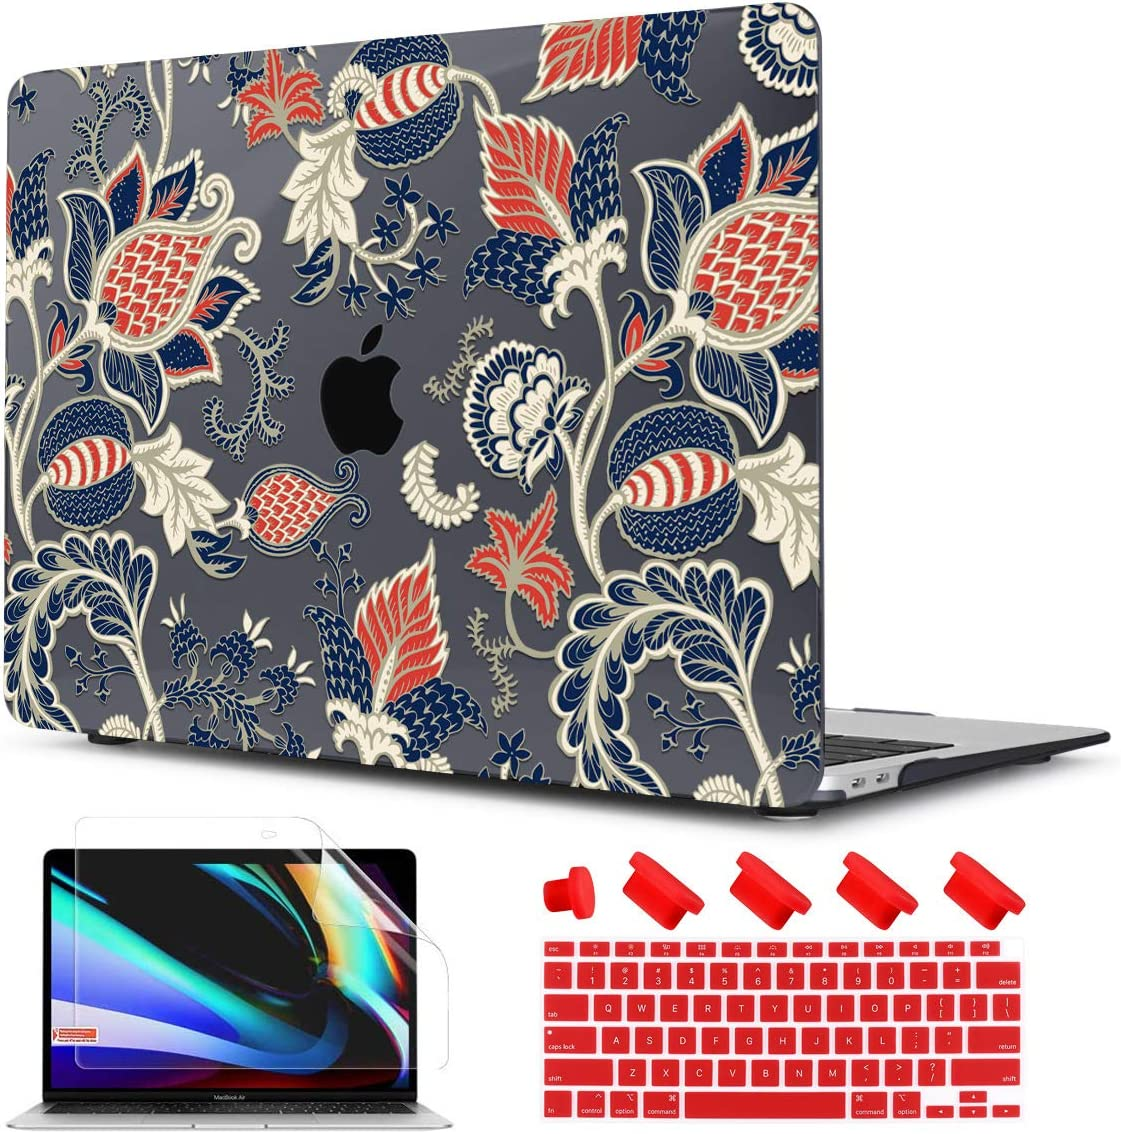 TwoL Cover for MacBook Air 13 Max 57% Special price for a limited time OFF 2019 Release inch A2337 2018 2020